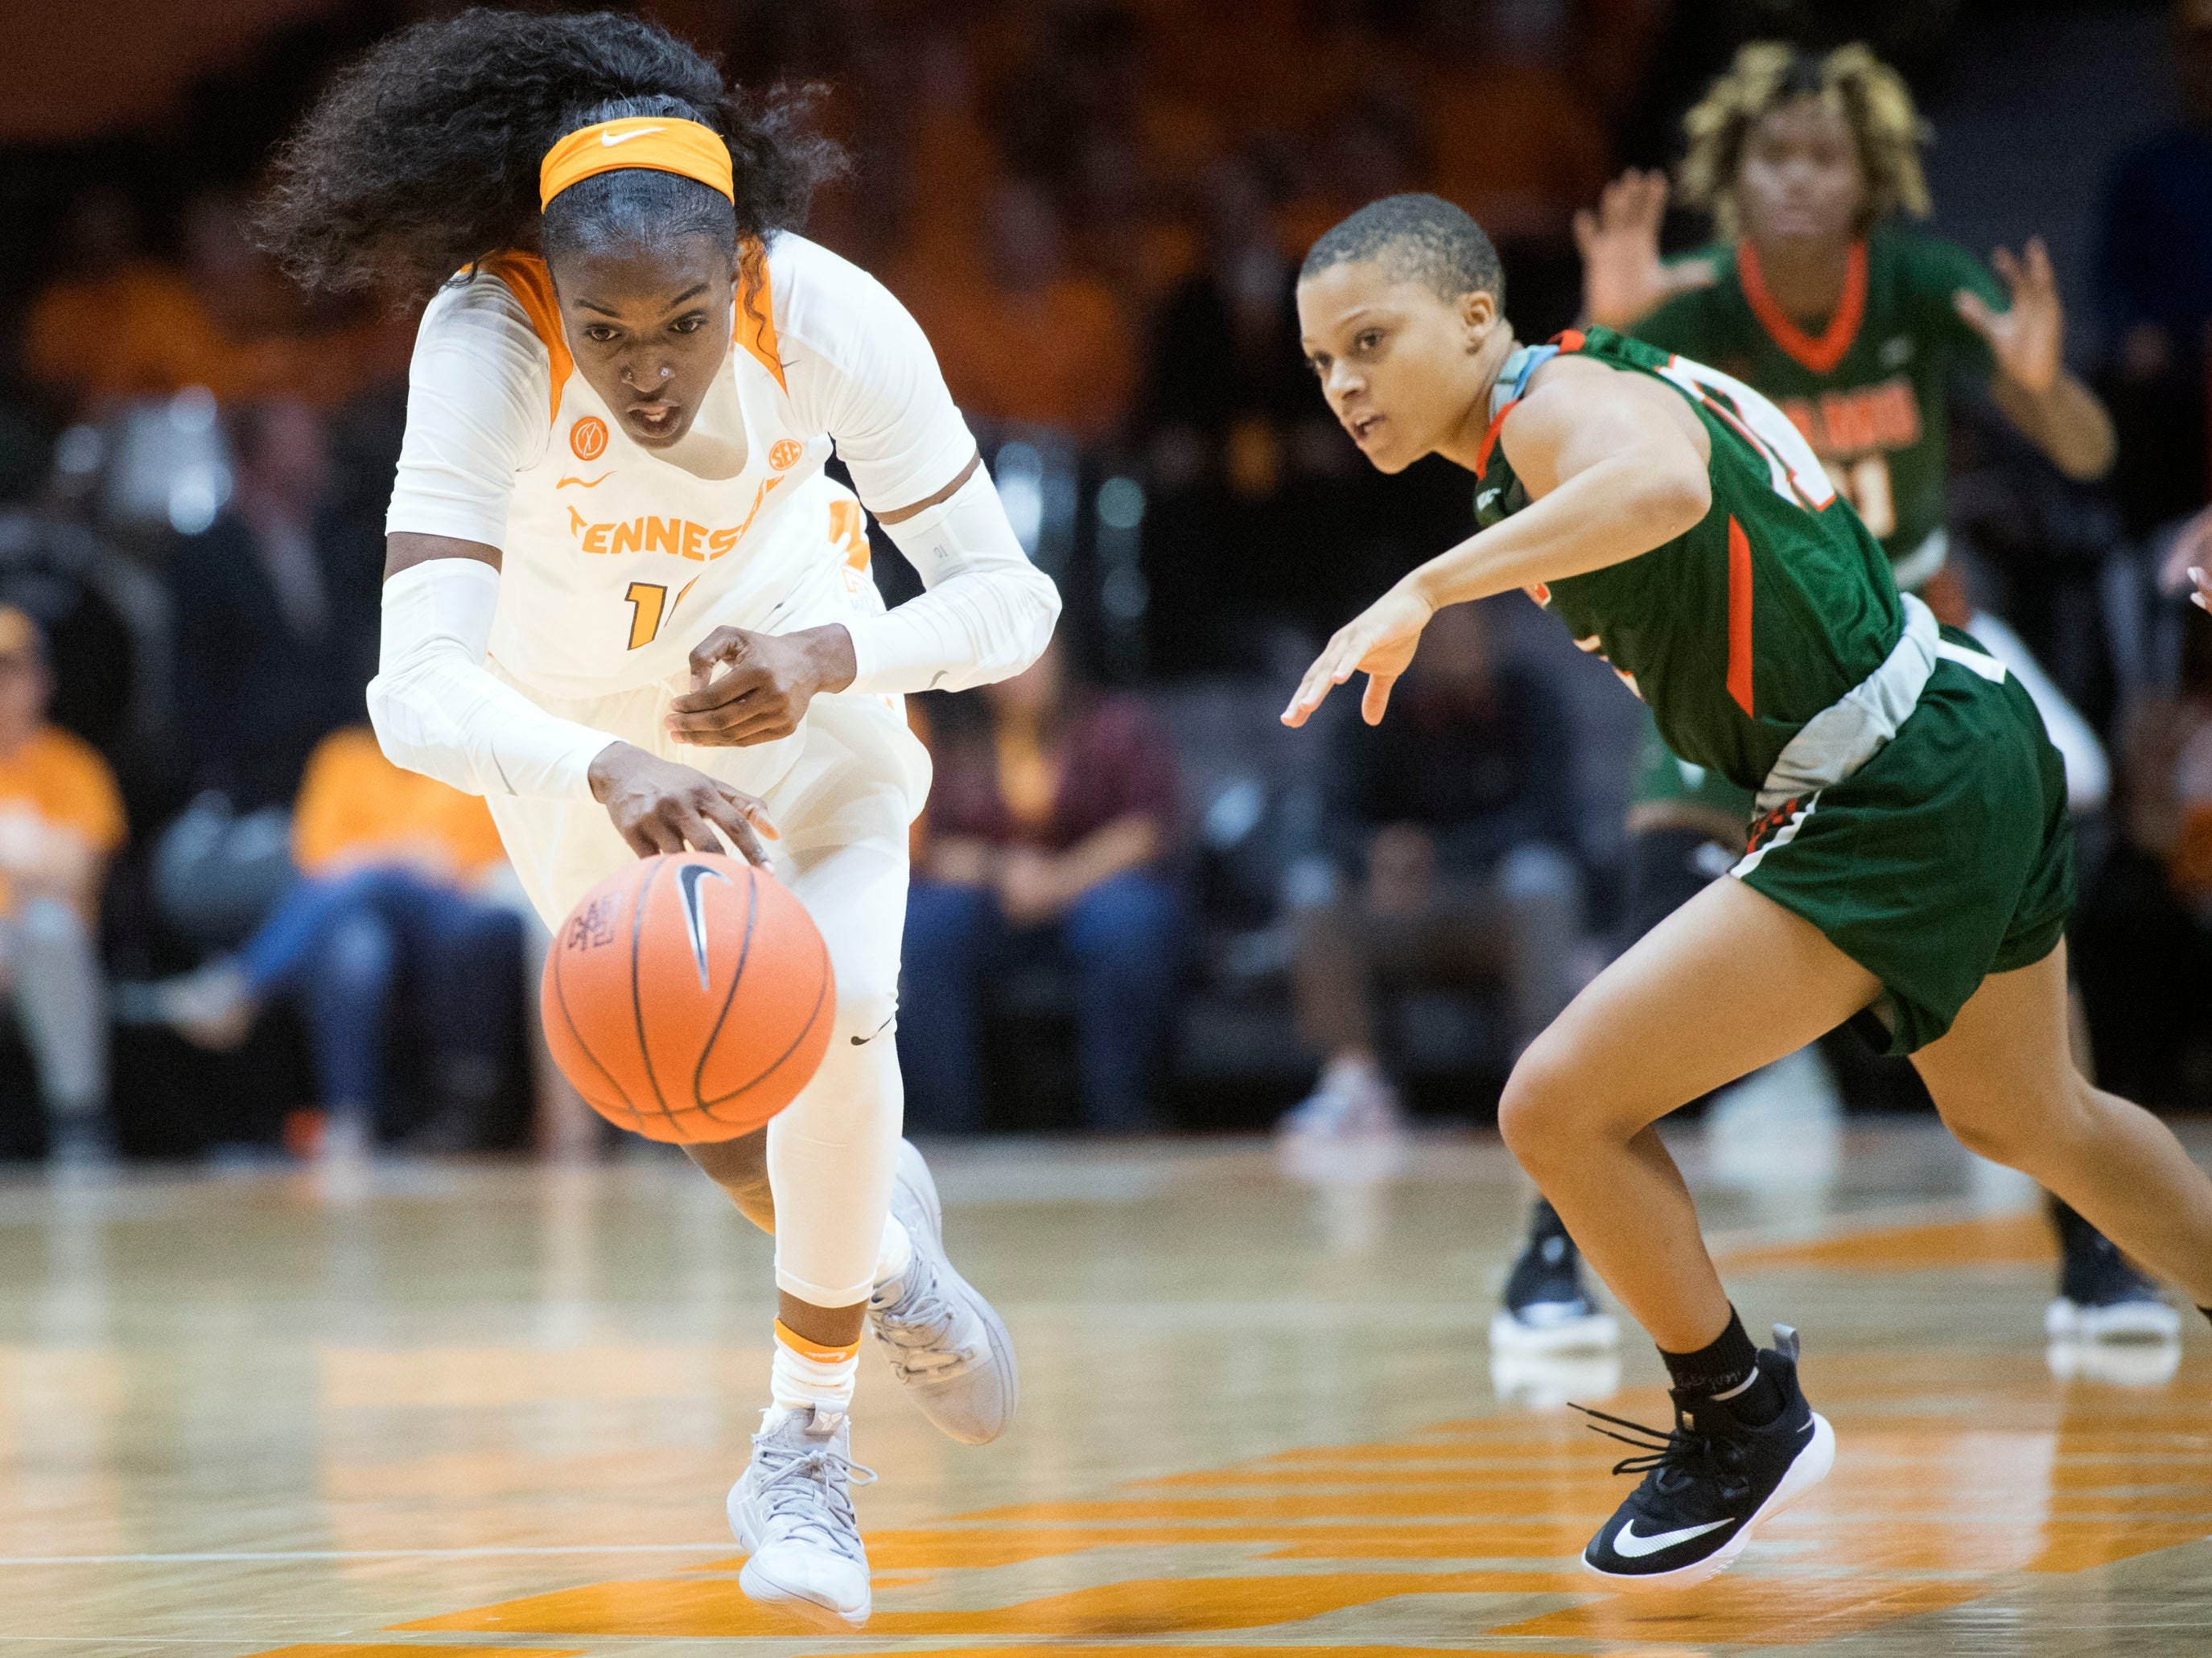 Tennessee's Meme Jackson (10) steals the ball from Florida A&M's Morgan Mitchell (11) on Sunday, November 18, 2018 at Thompson-Boling Arena.